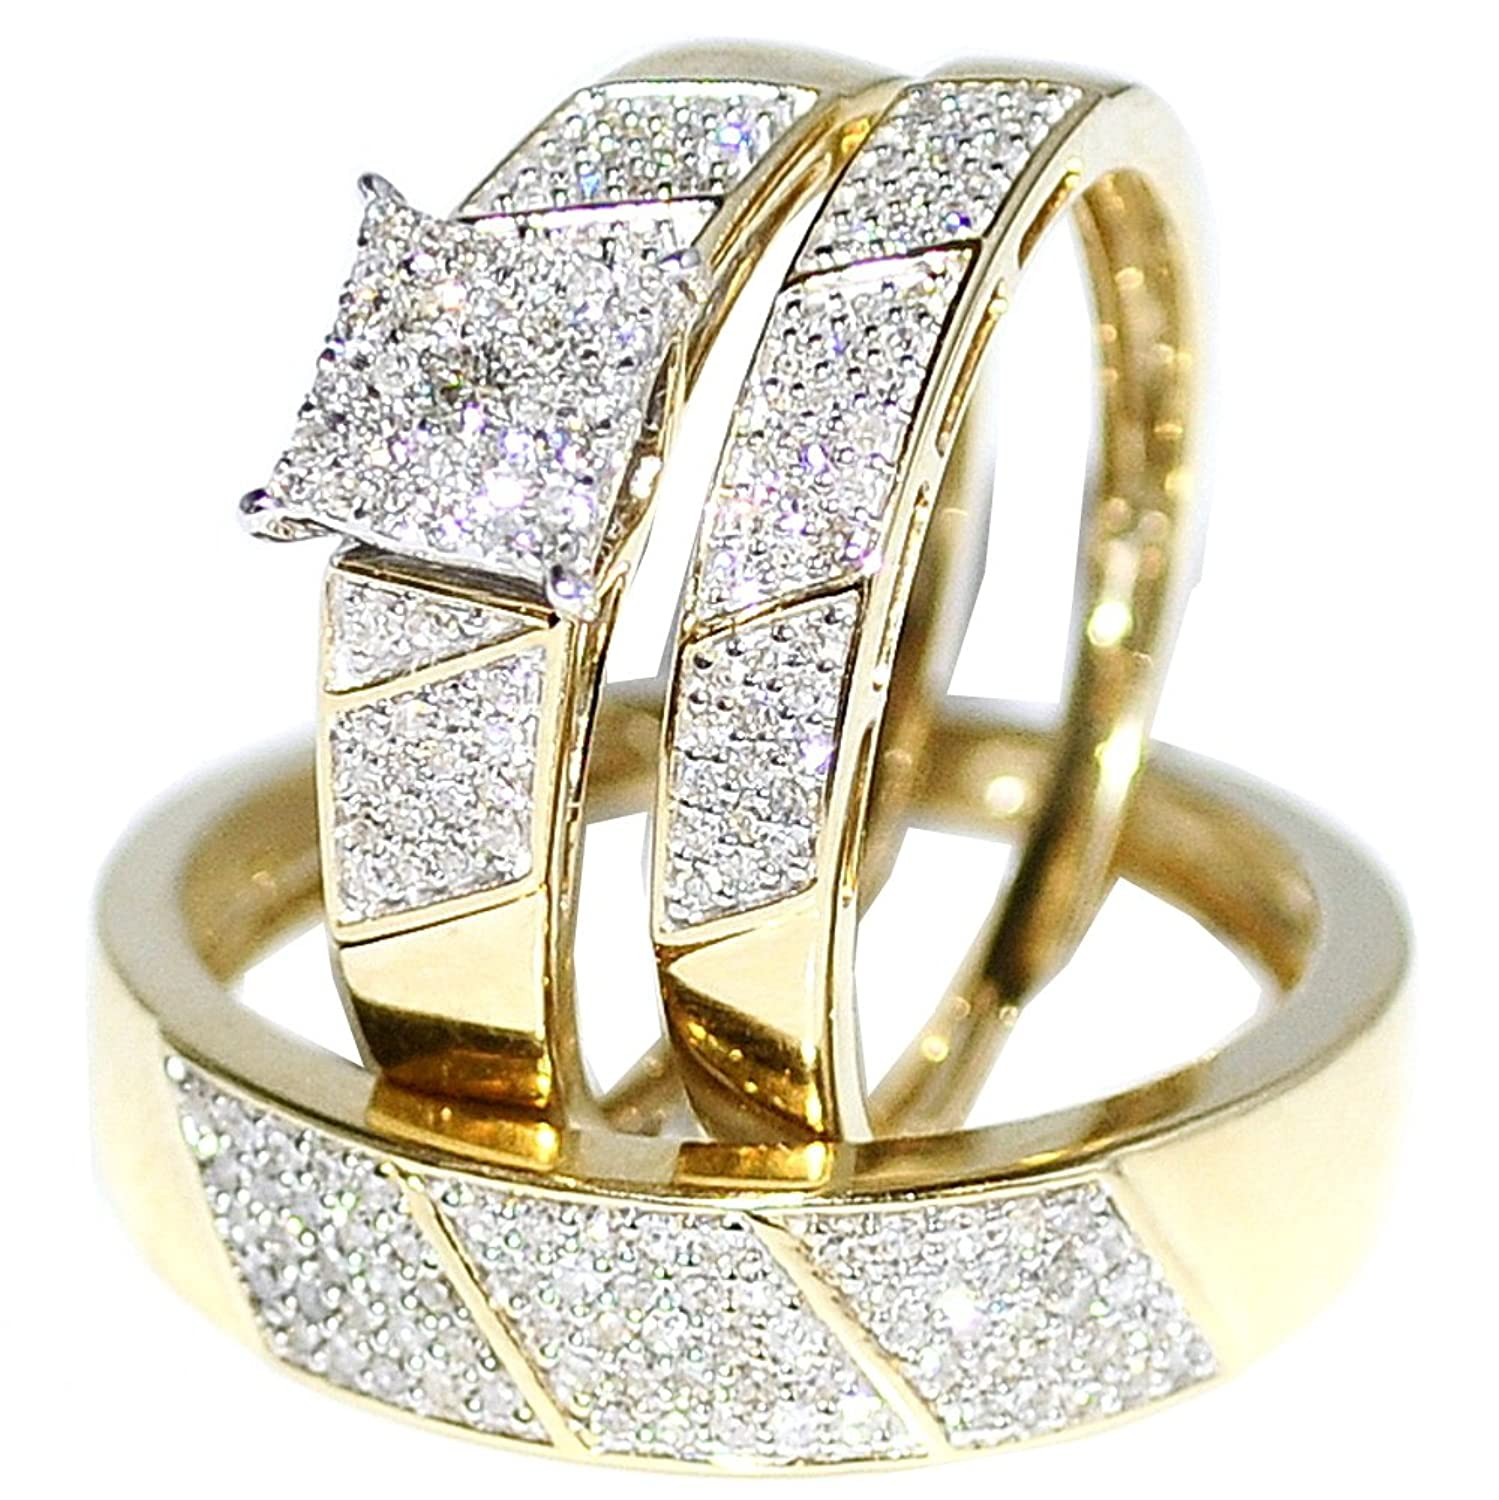 w band bands gold white t his her for and sets hers diamond yellow carat set wedding